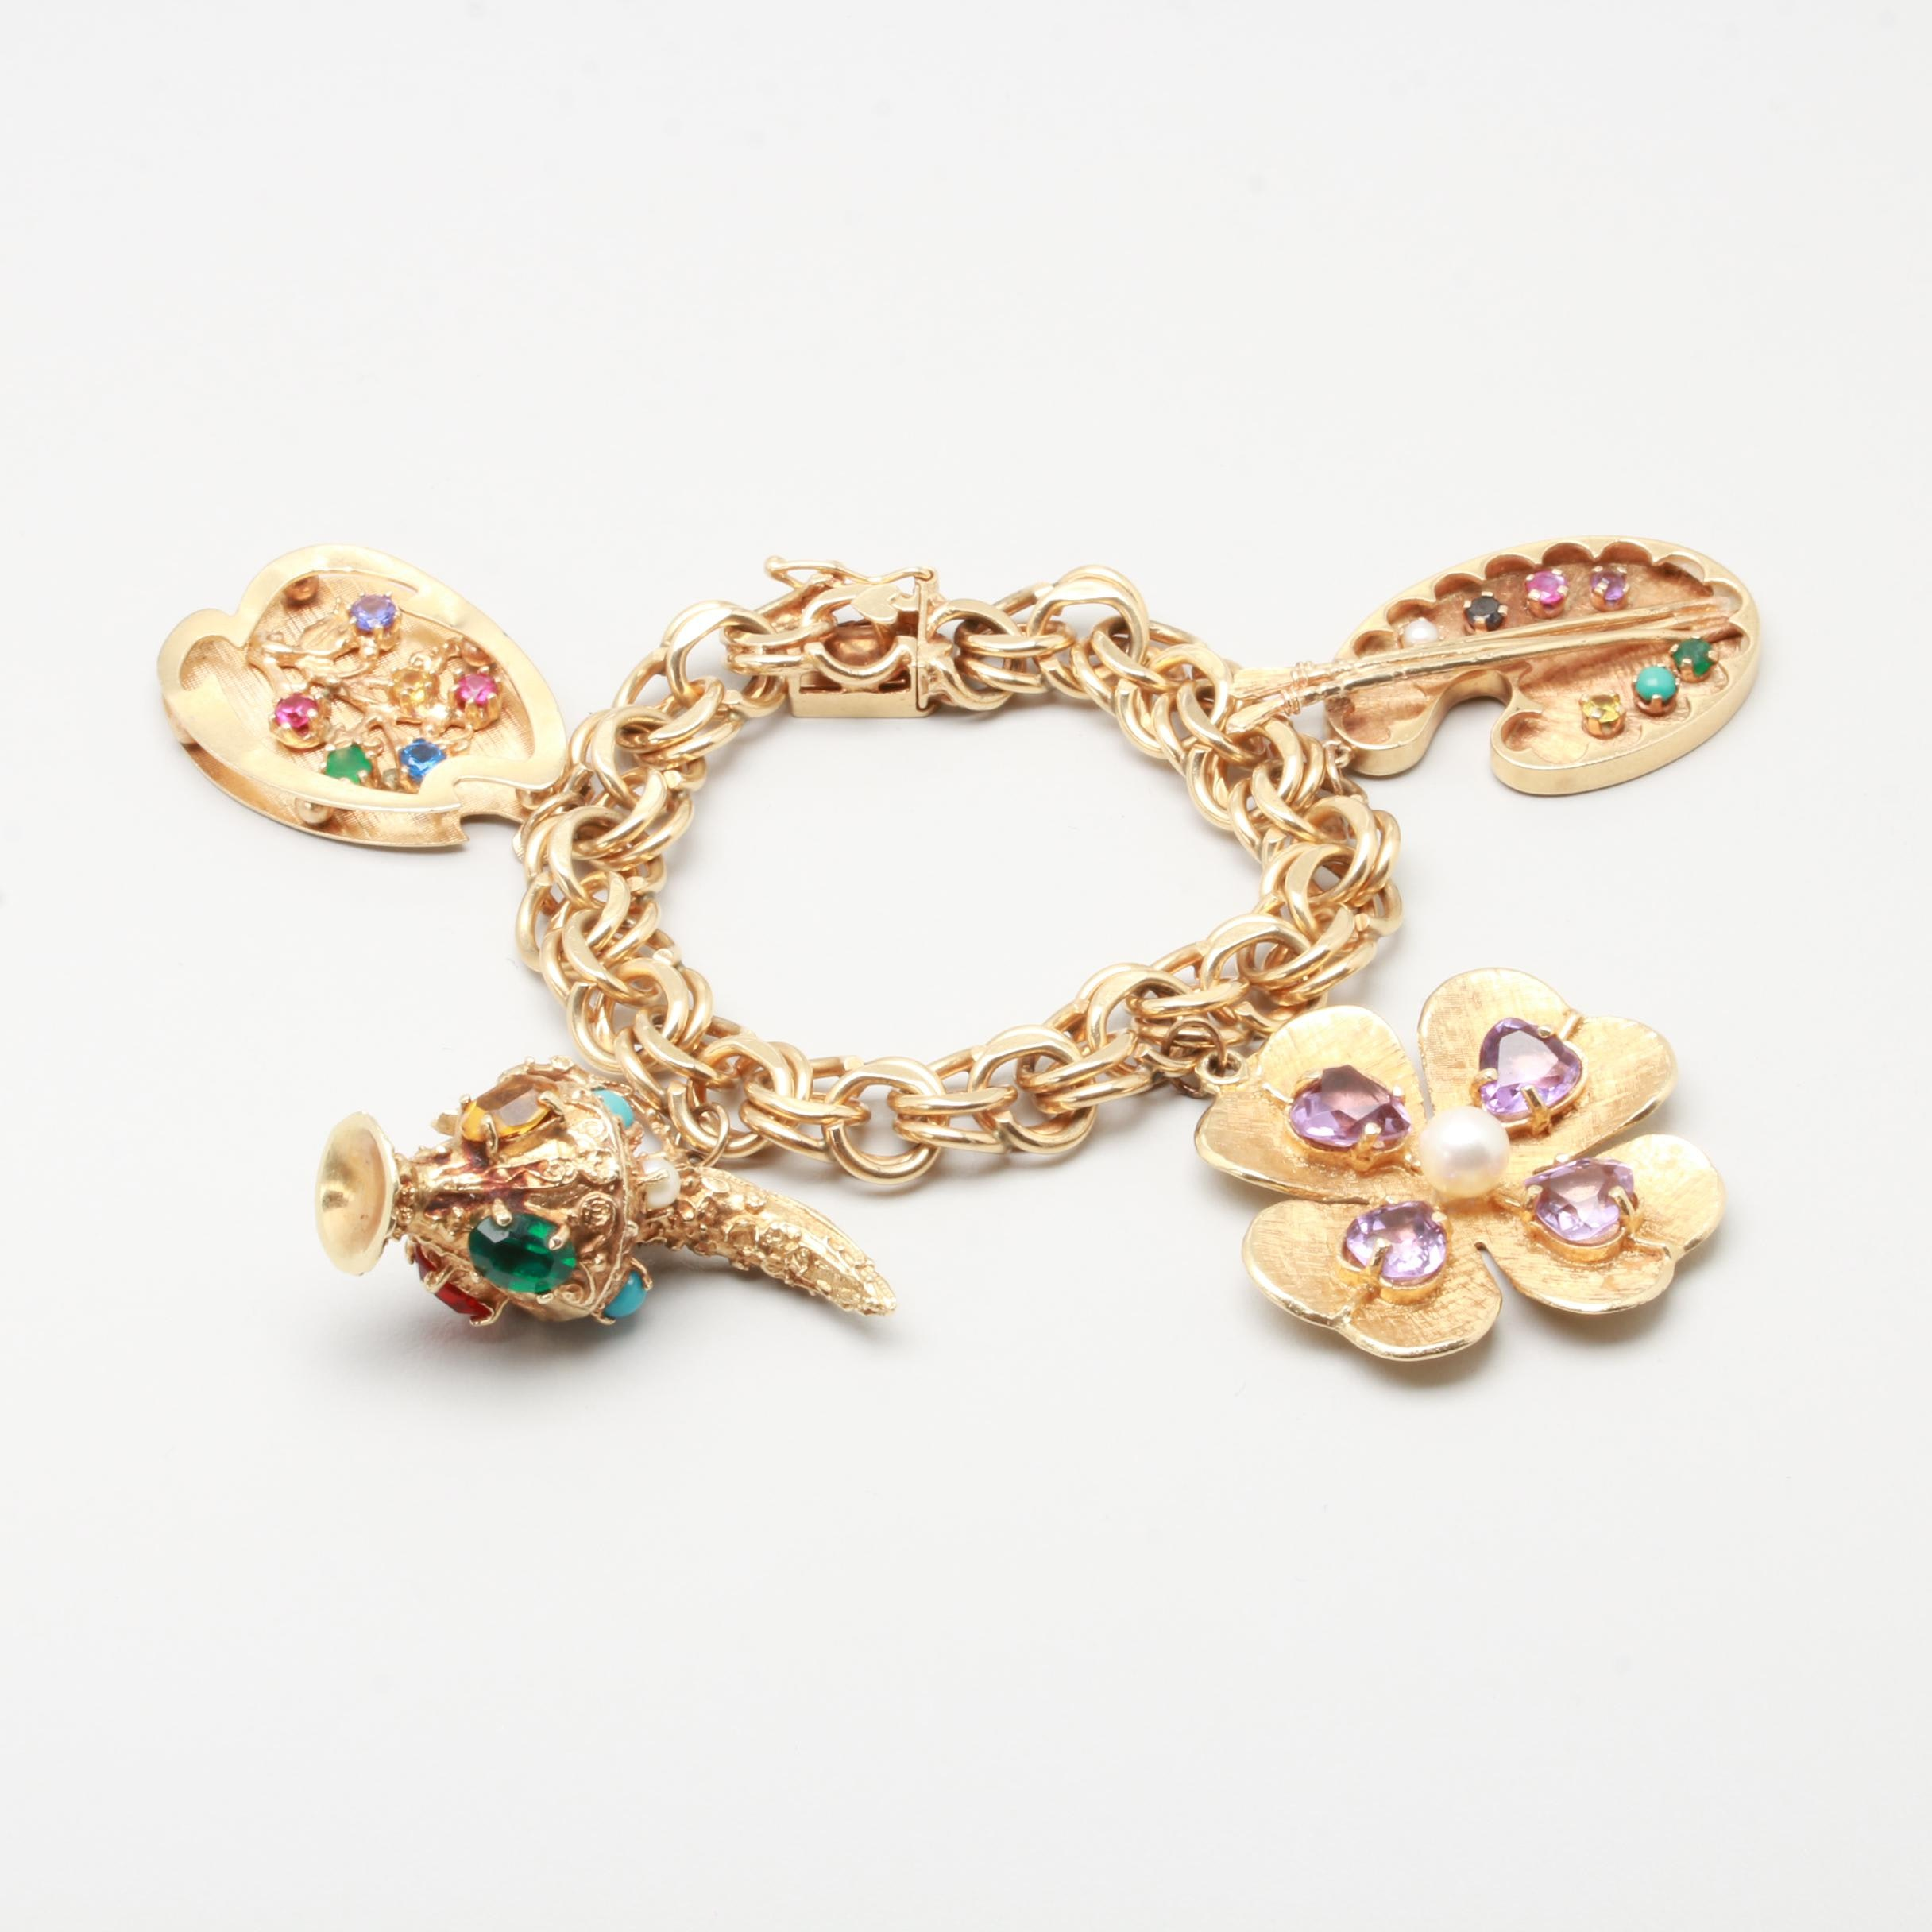 14K Yellow Gold Charm Bracelet Including Synthetic Ruby and Synthetic Sapphire